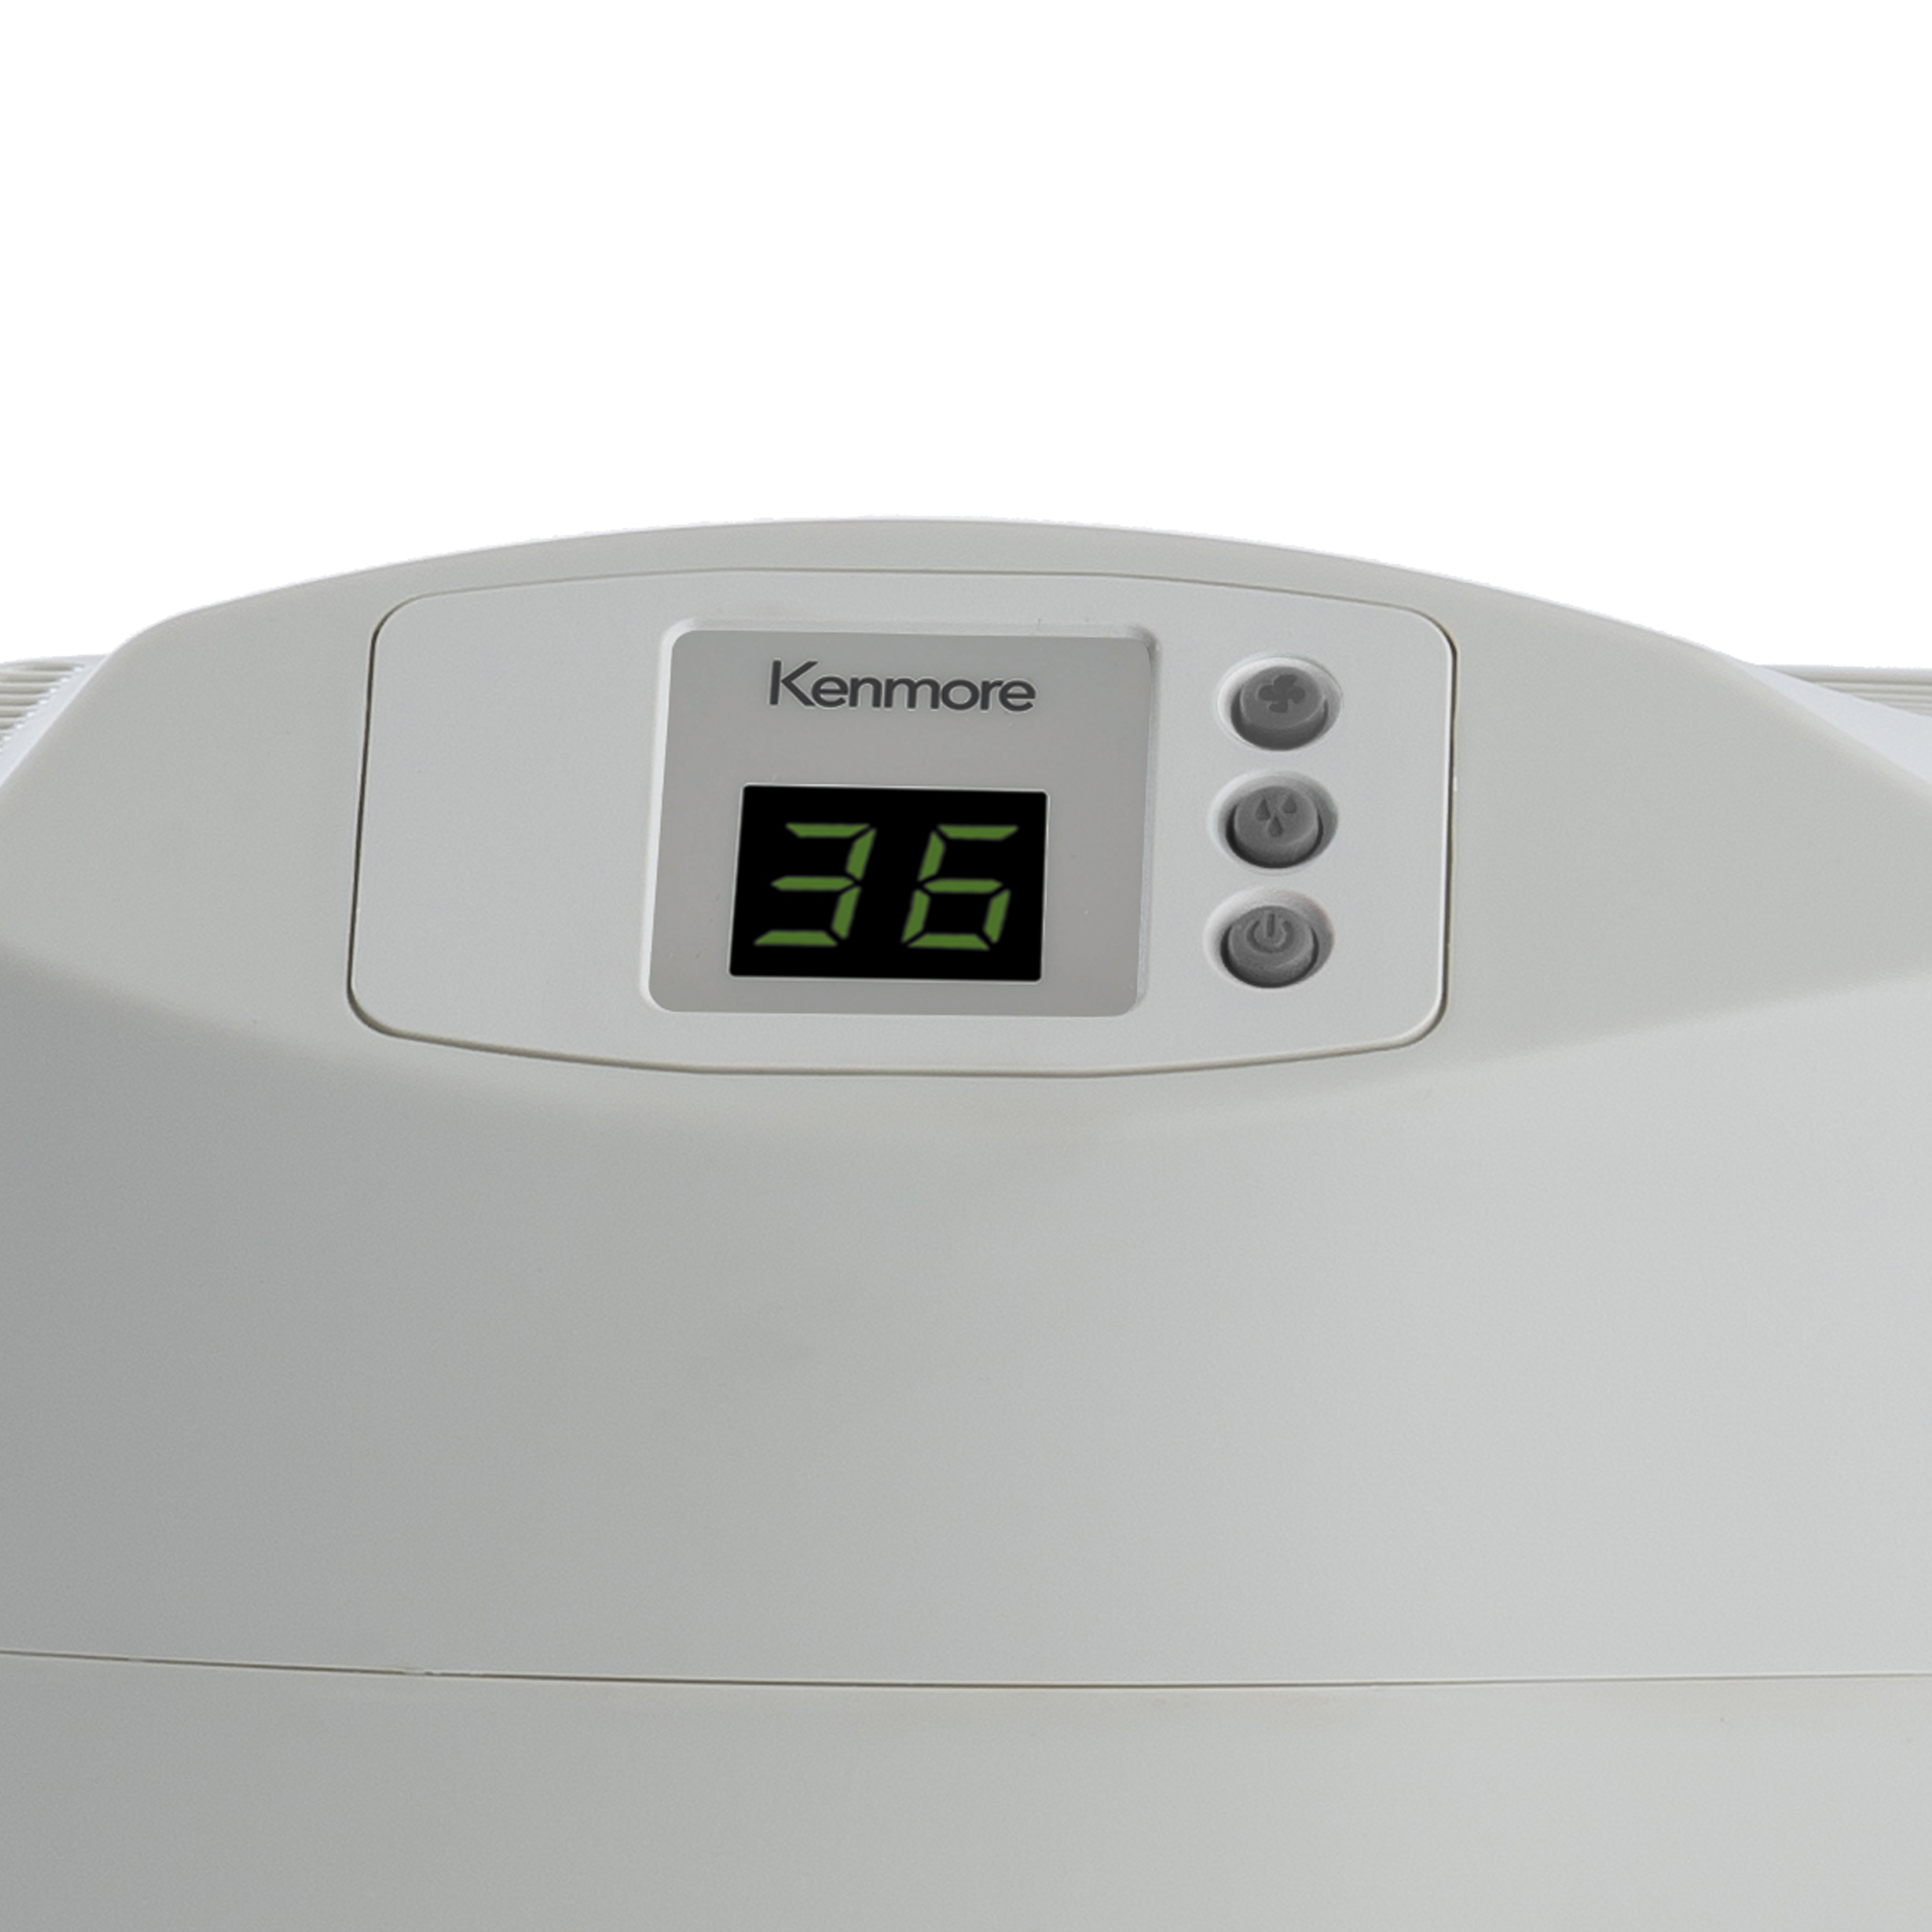 Kenmore Evaporative Humidifier (2.5 Gallon Capacity)